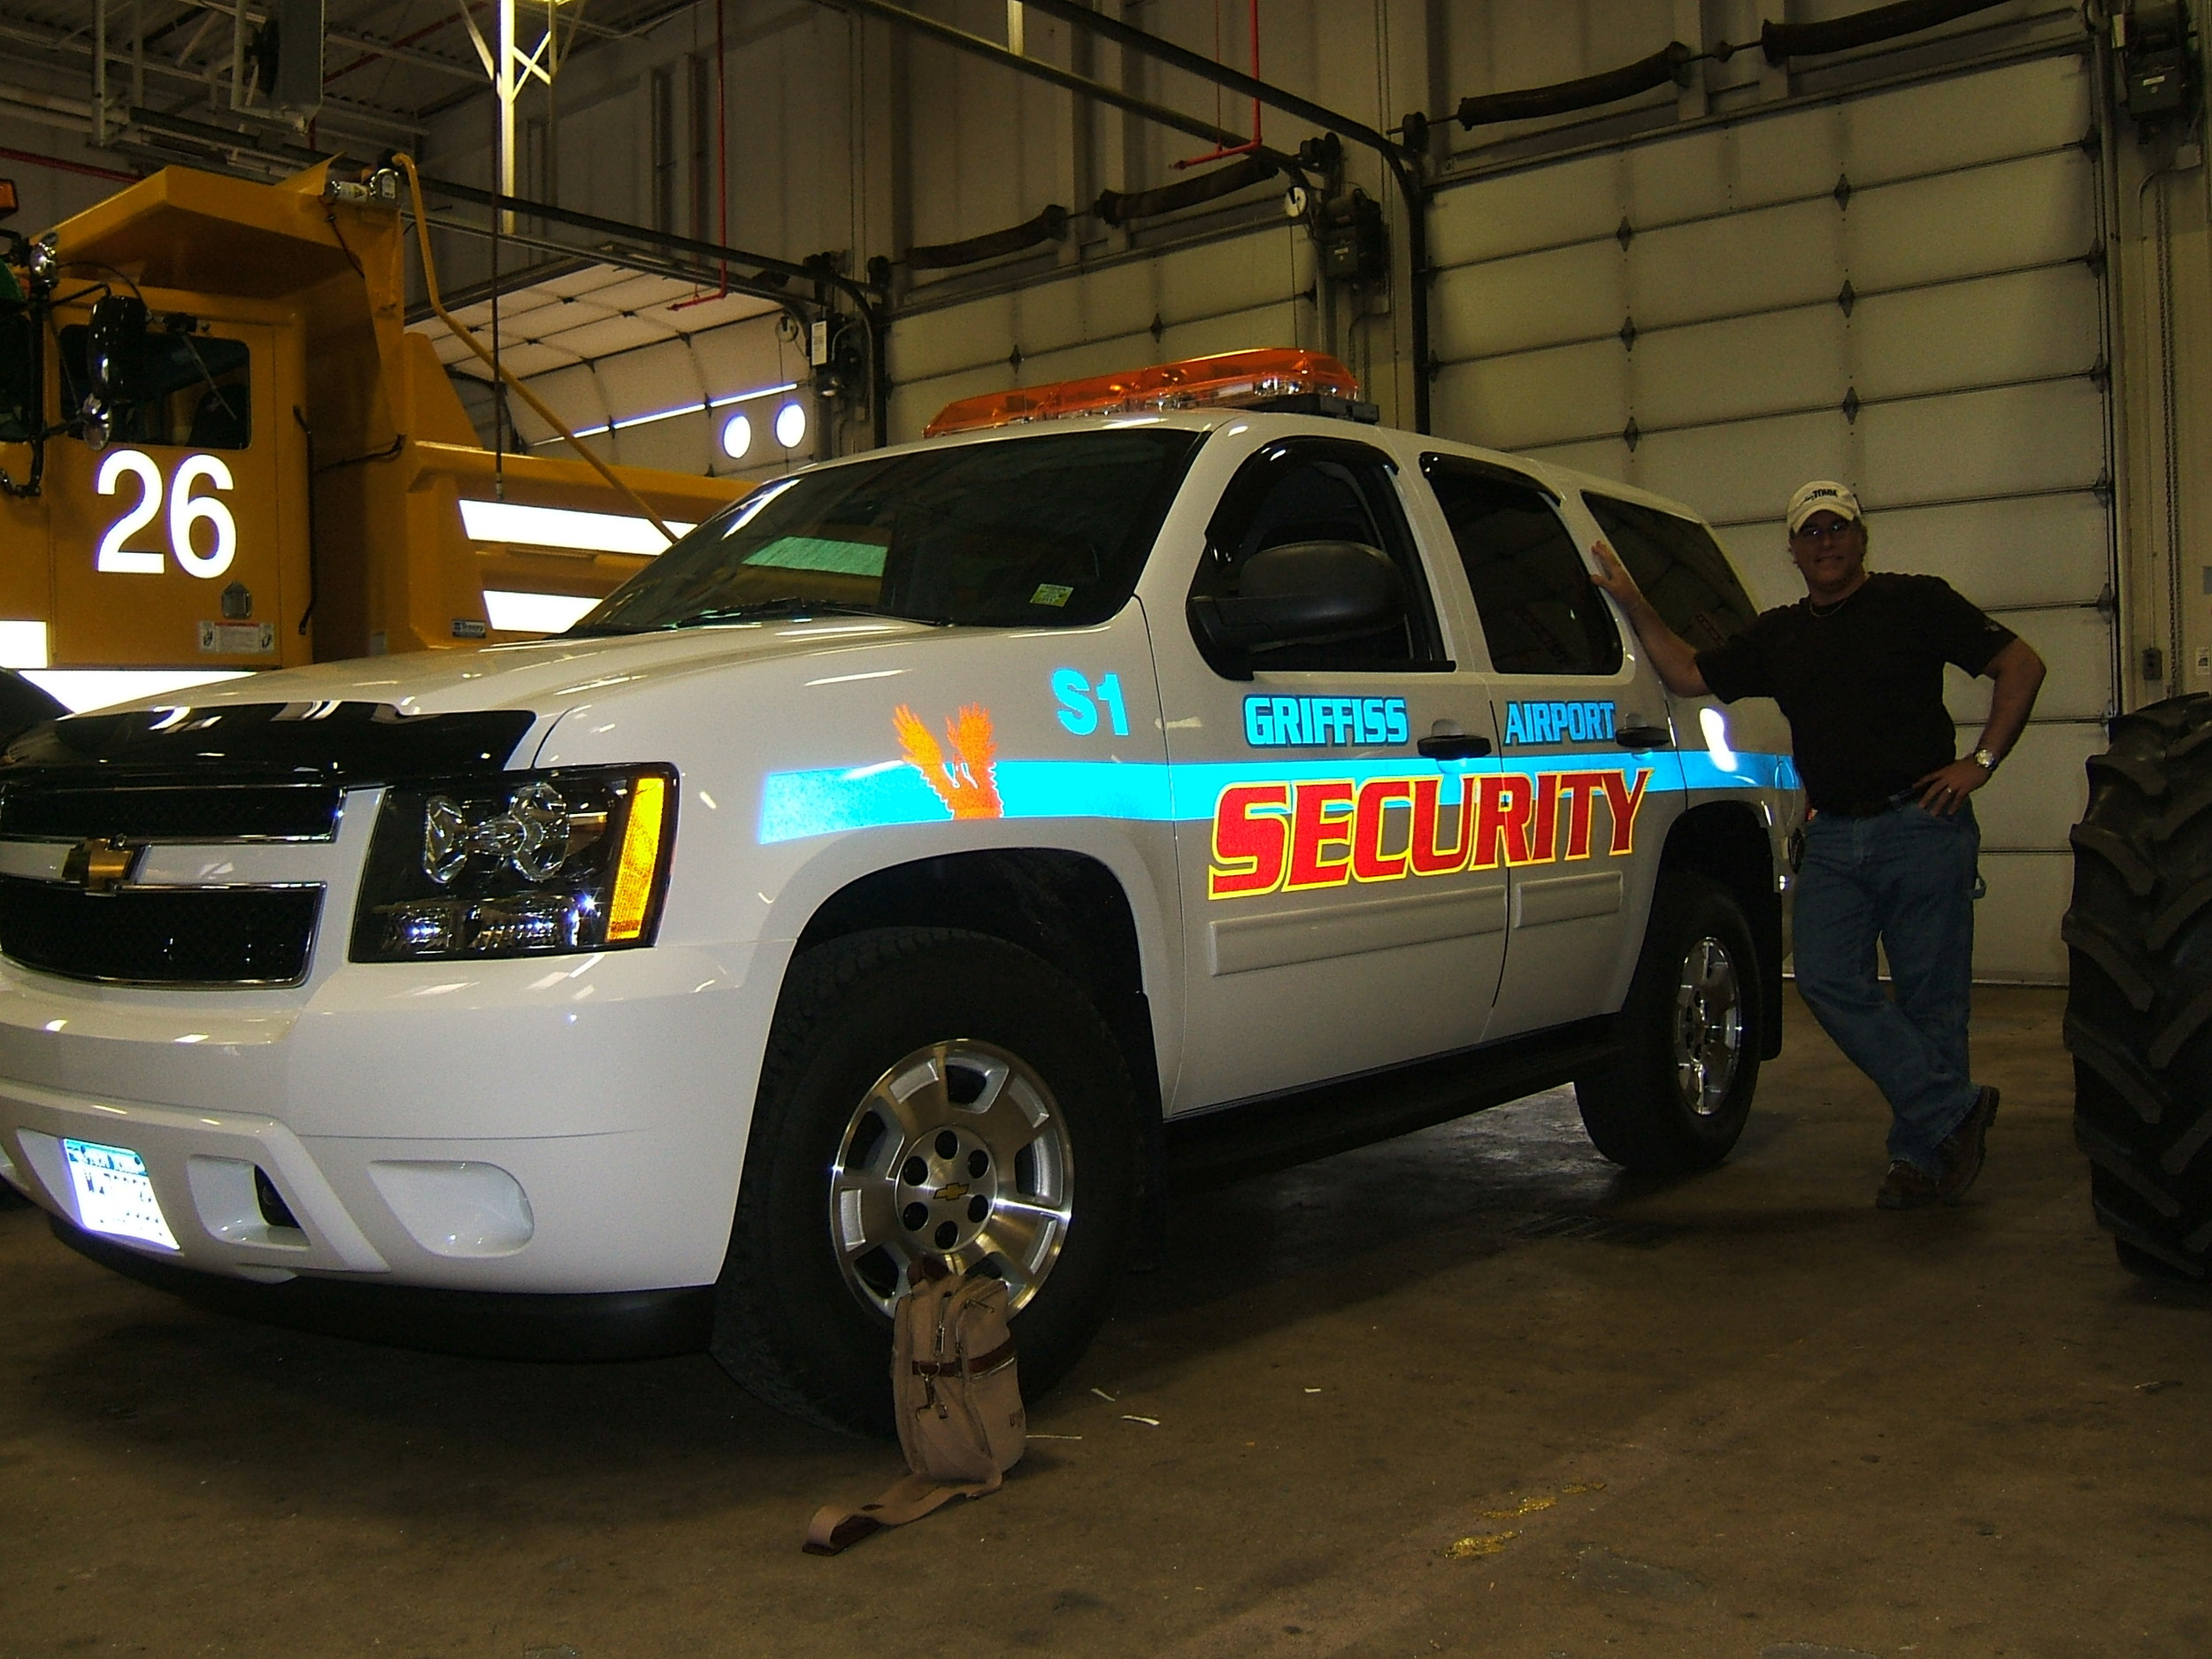 GRIFFISS POLICE REFLECTIVE 2.JPG